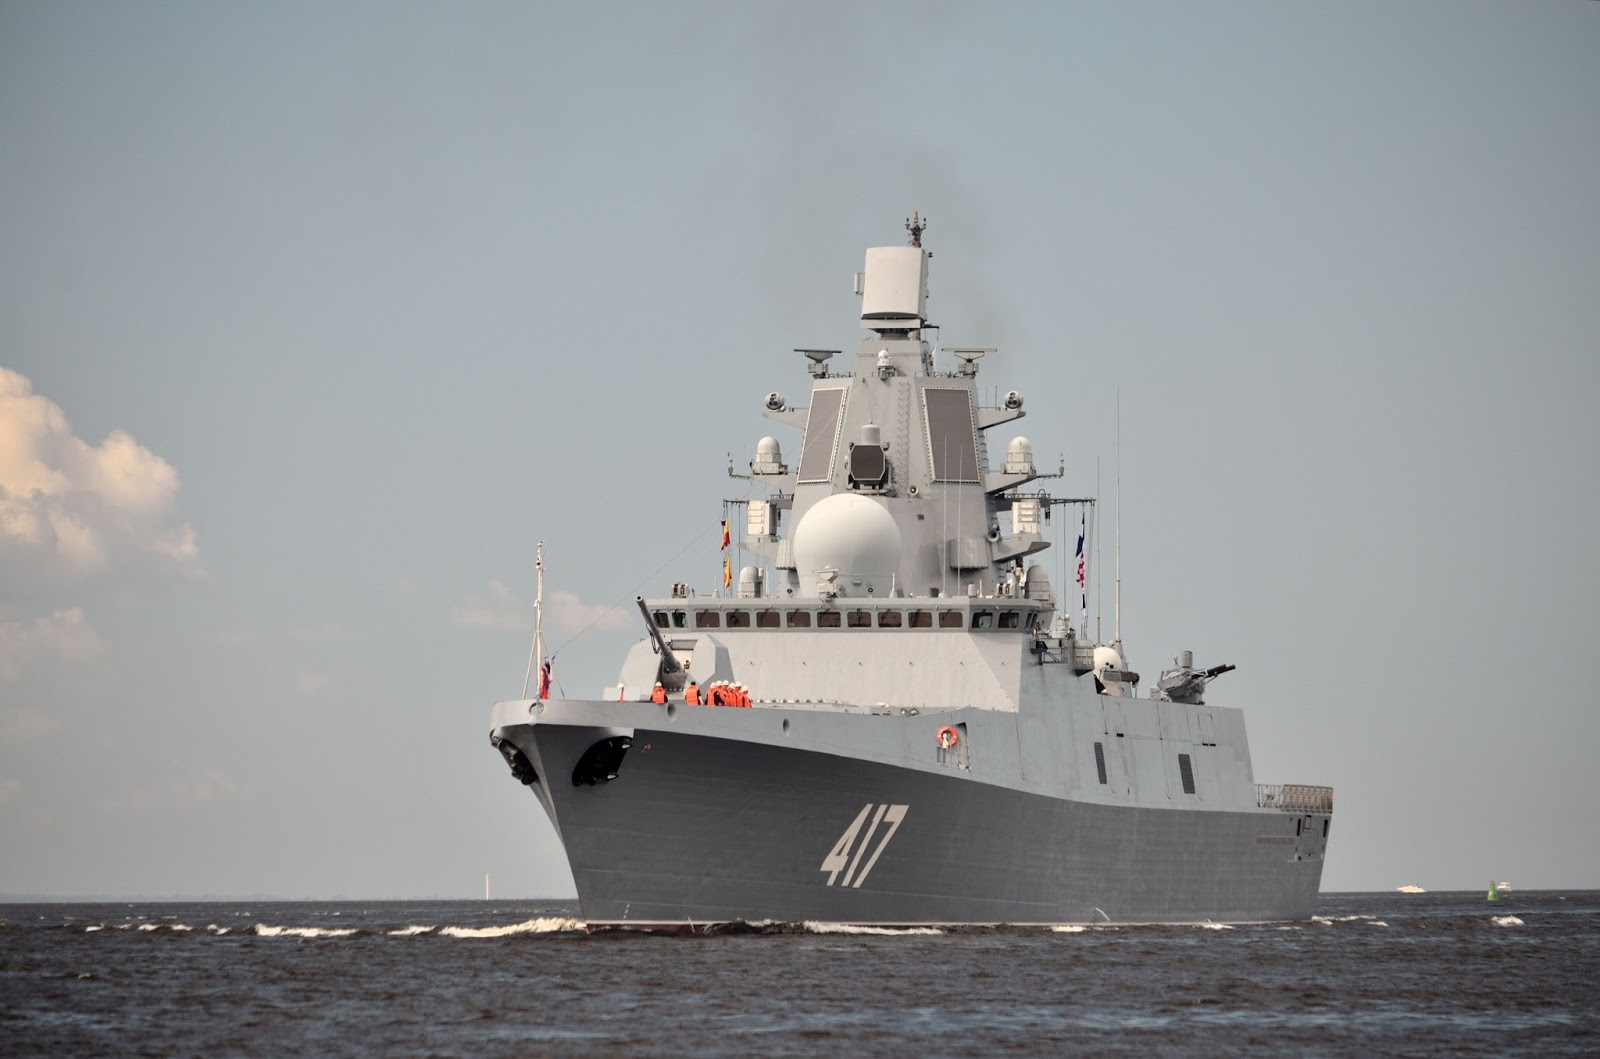 Frigate Admiral Kasatonov: on the design and capabilities of the vessel 73